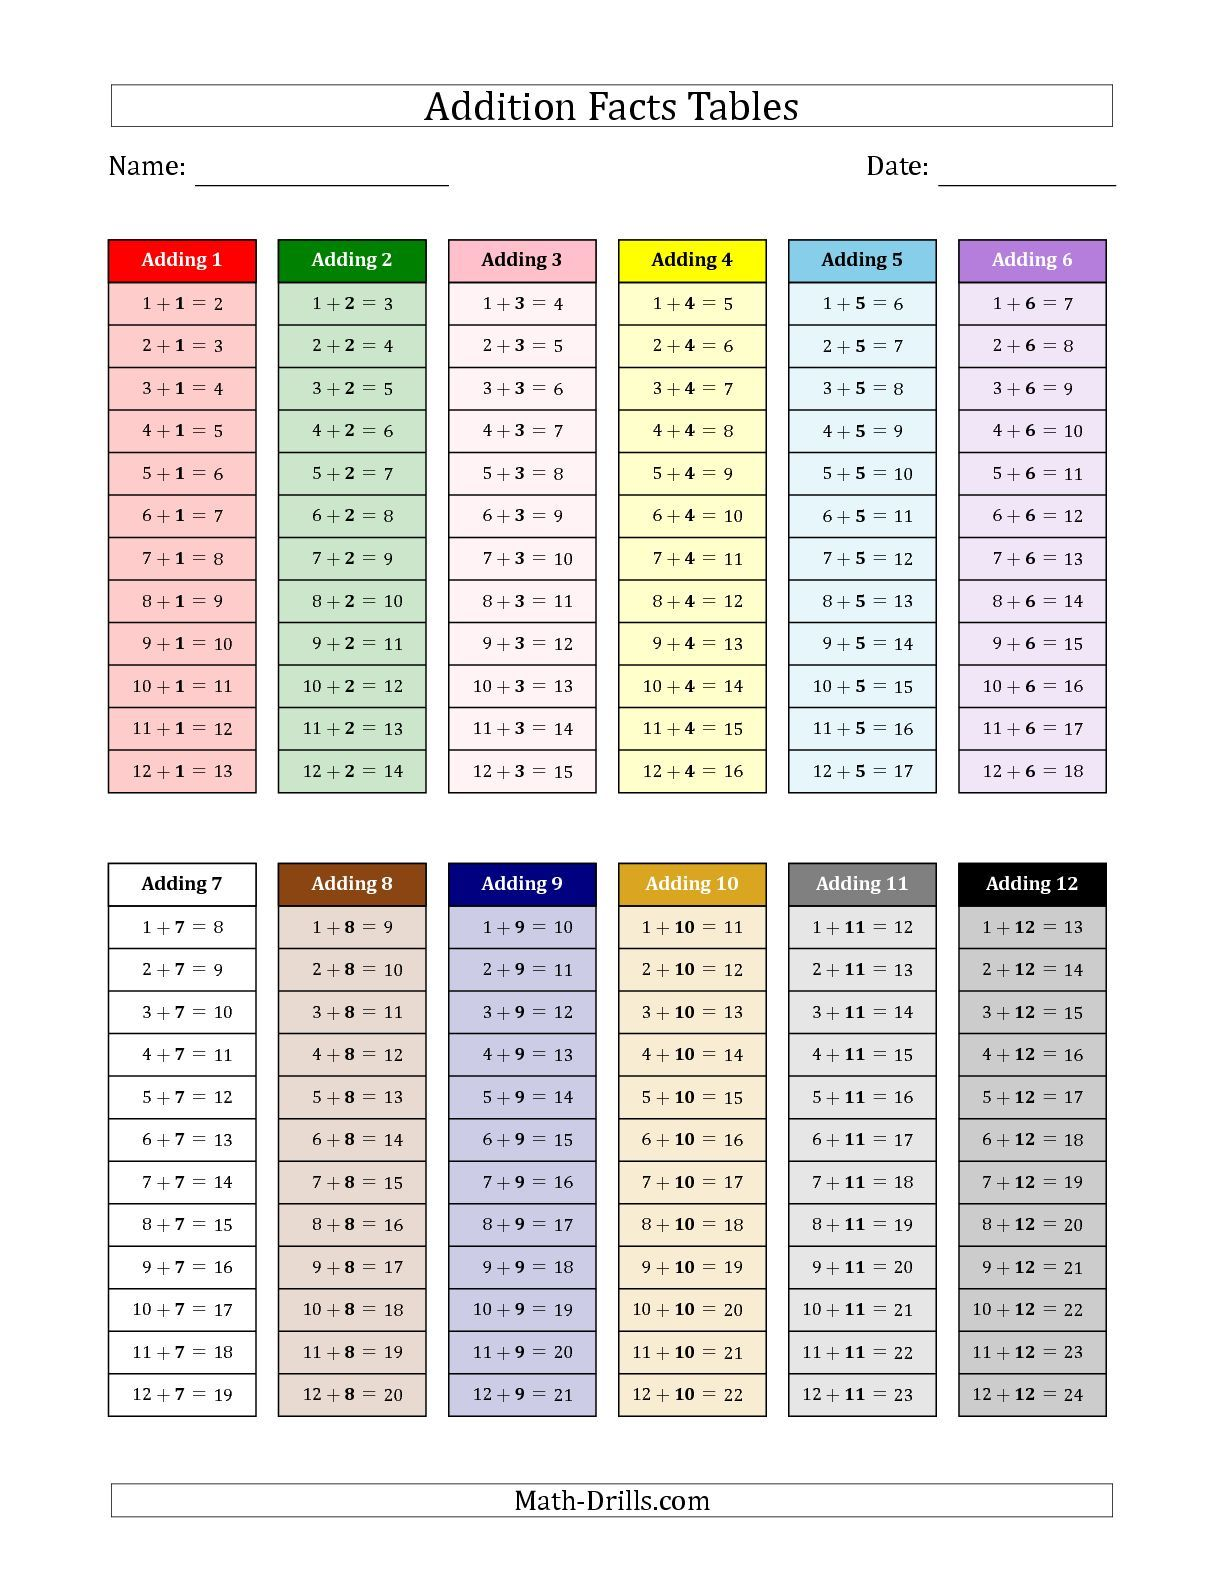 worksheet Addition Facts the addition facts tables in montessori colors 1 to 12 math worksheet from worksheet